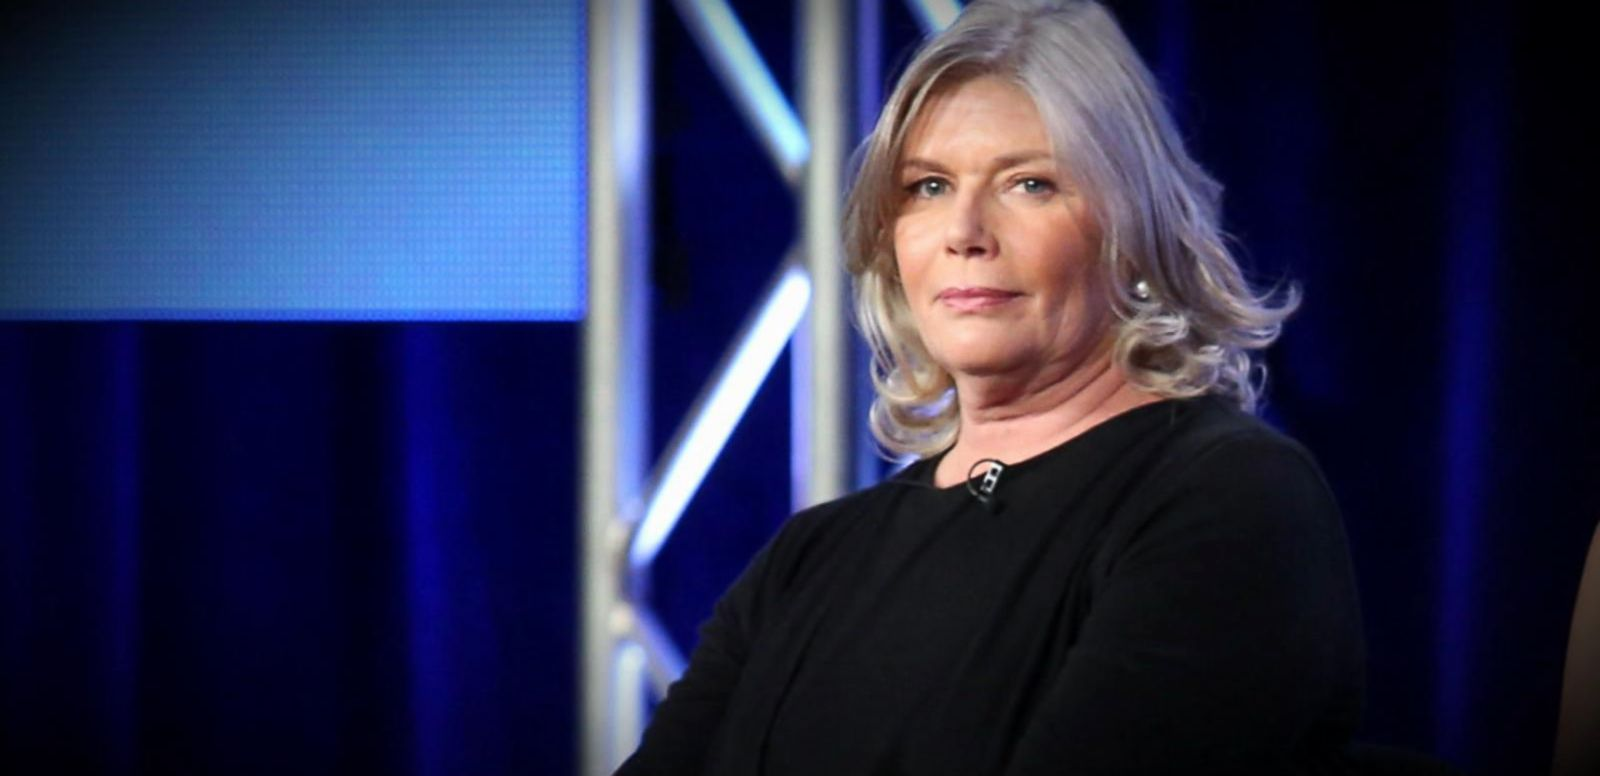 VIDEO: 'Top Gun' Actress Kelly McGillis Attacked in Her Own Home